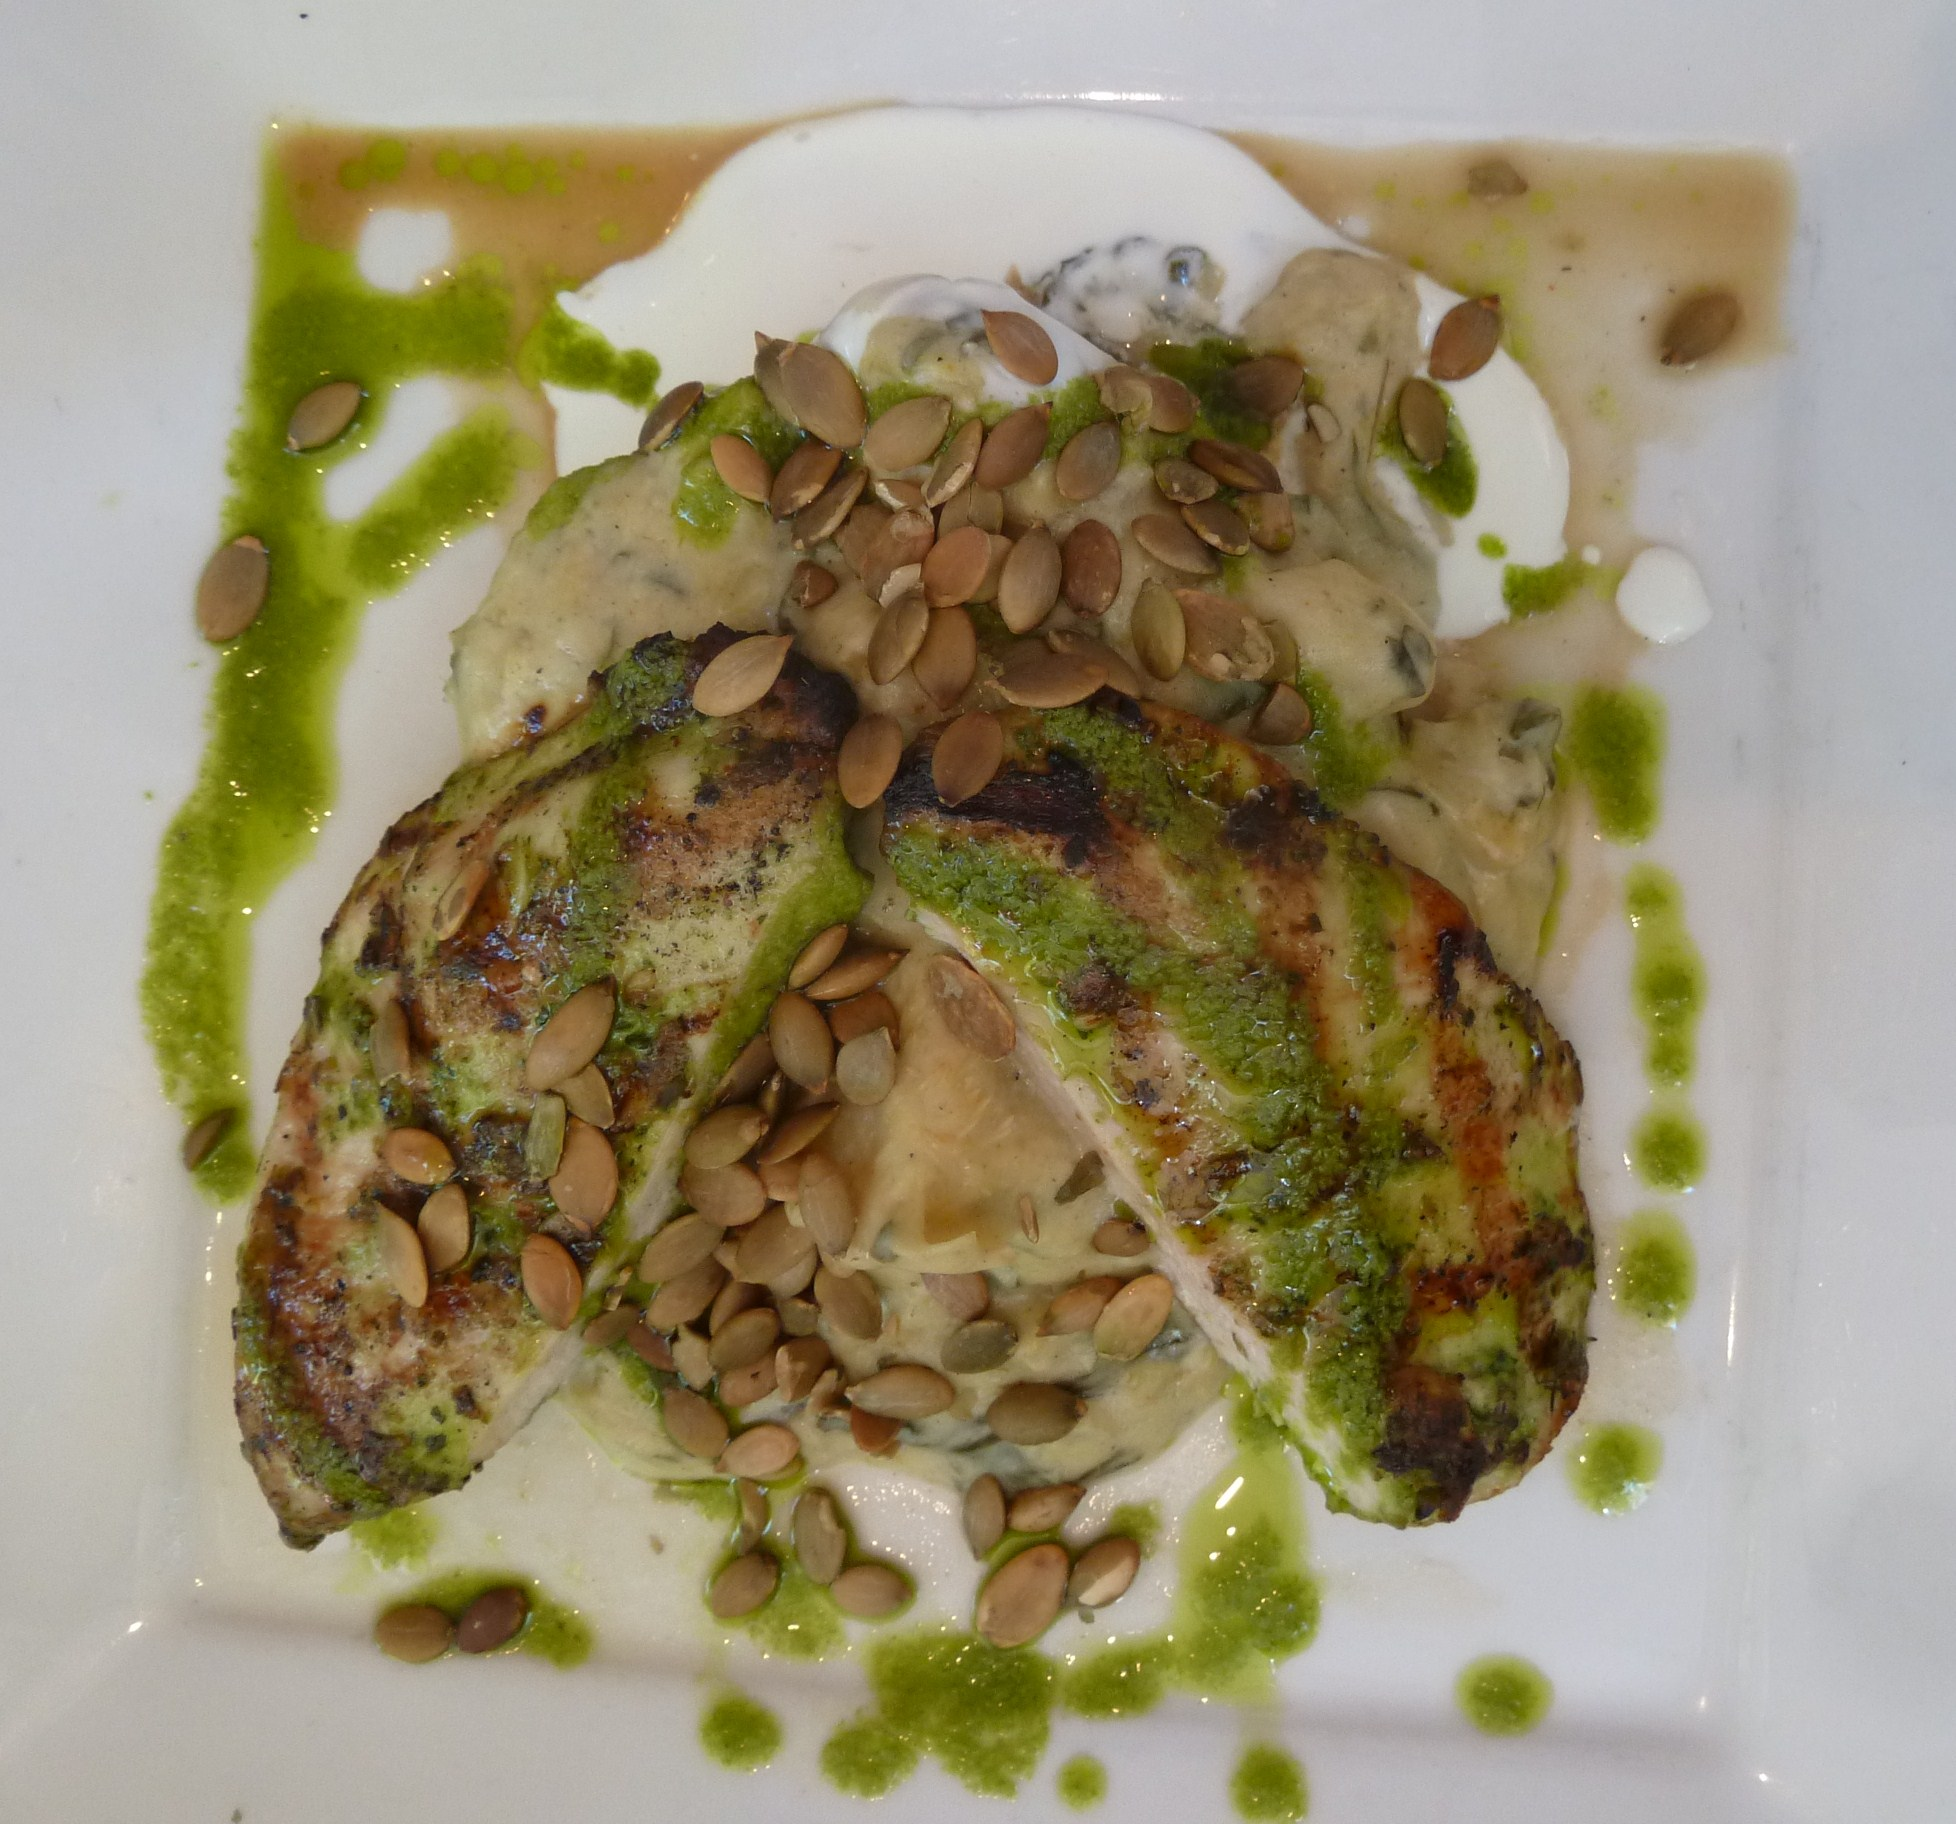 ... mushroom stuffed with artichoke gratin and goat cheese drizzle